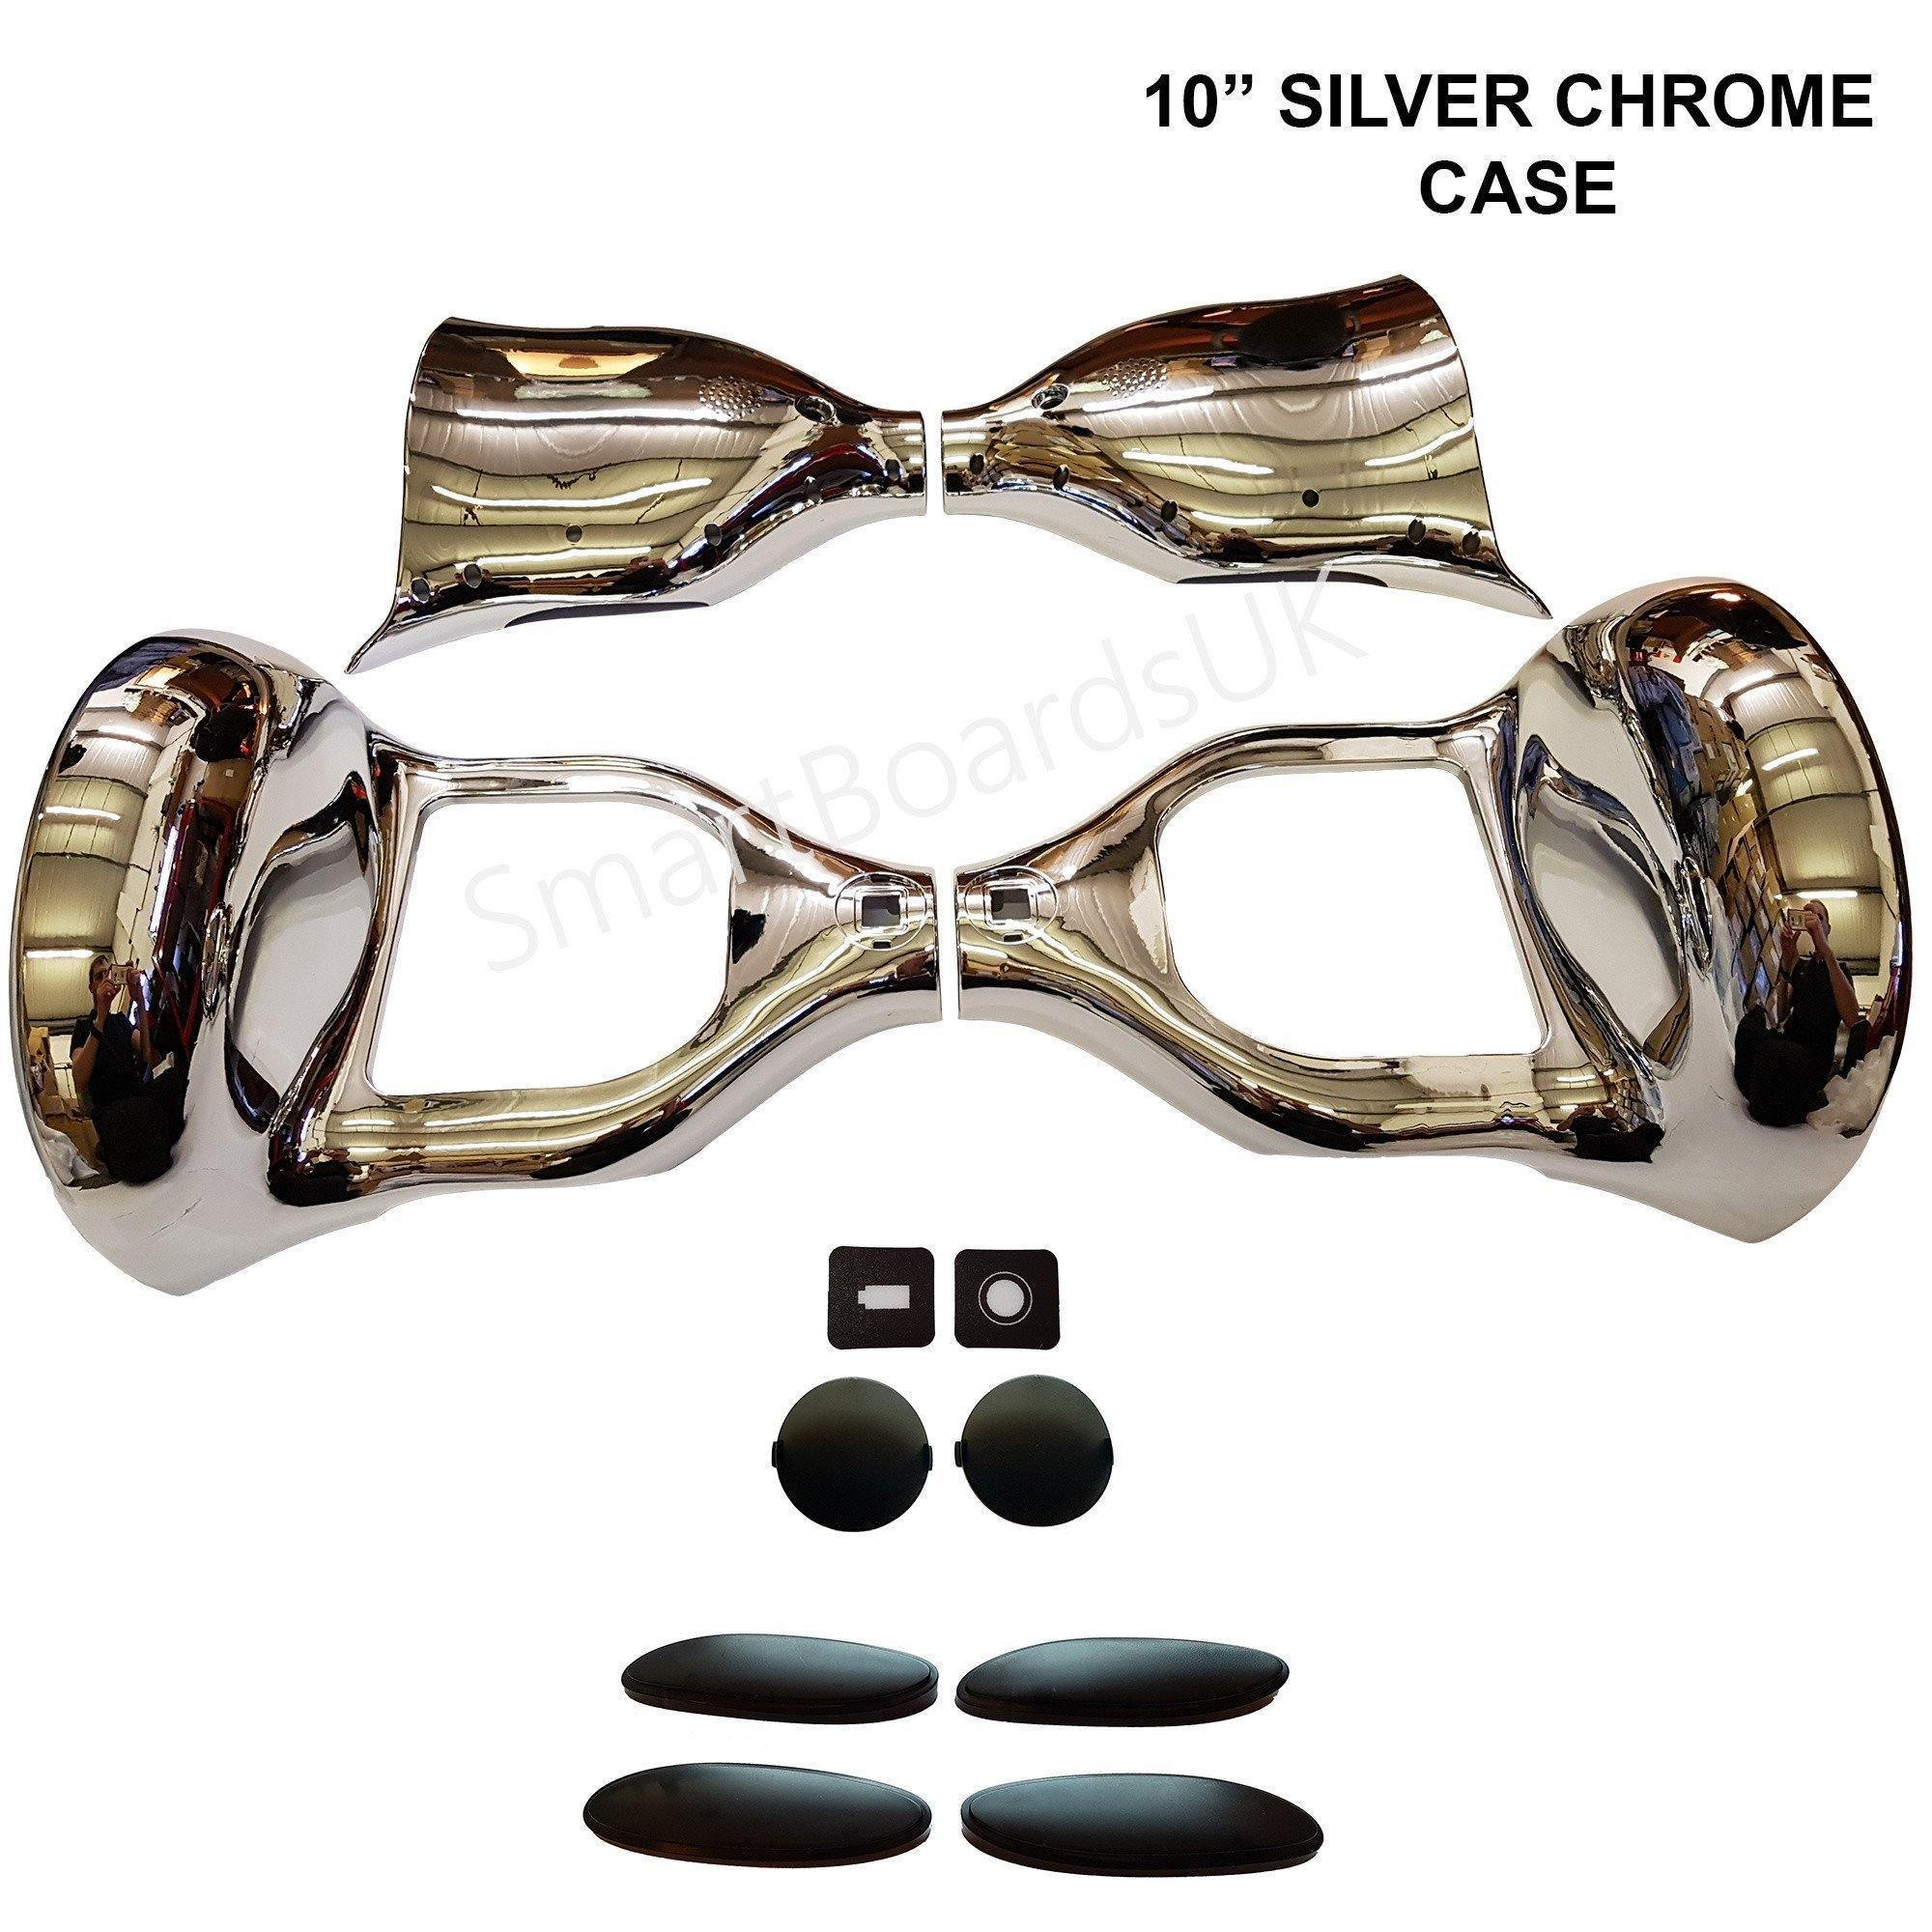 10 INCH CHROME CASE SHELL (10